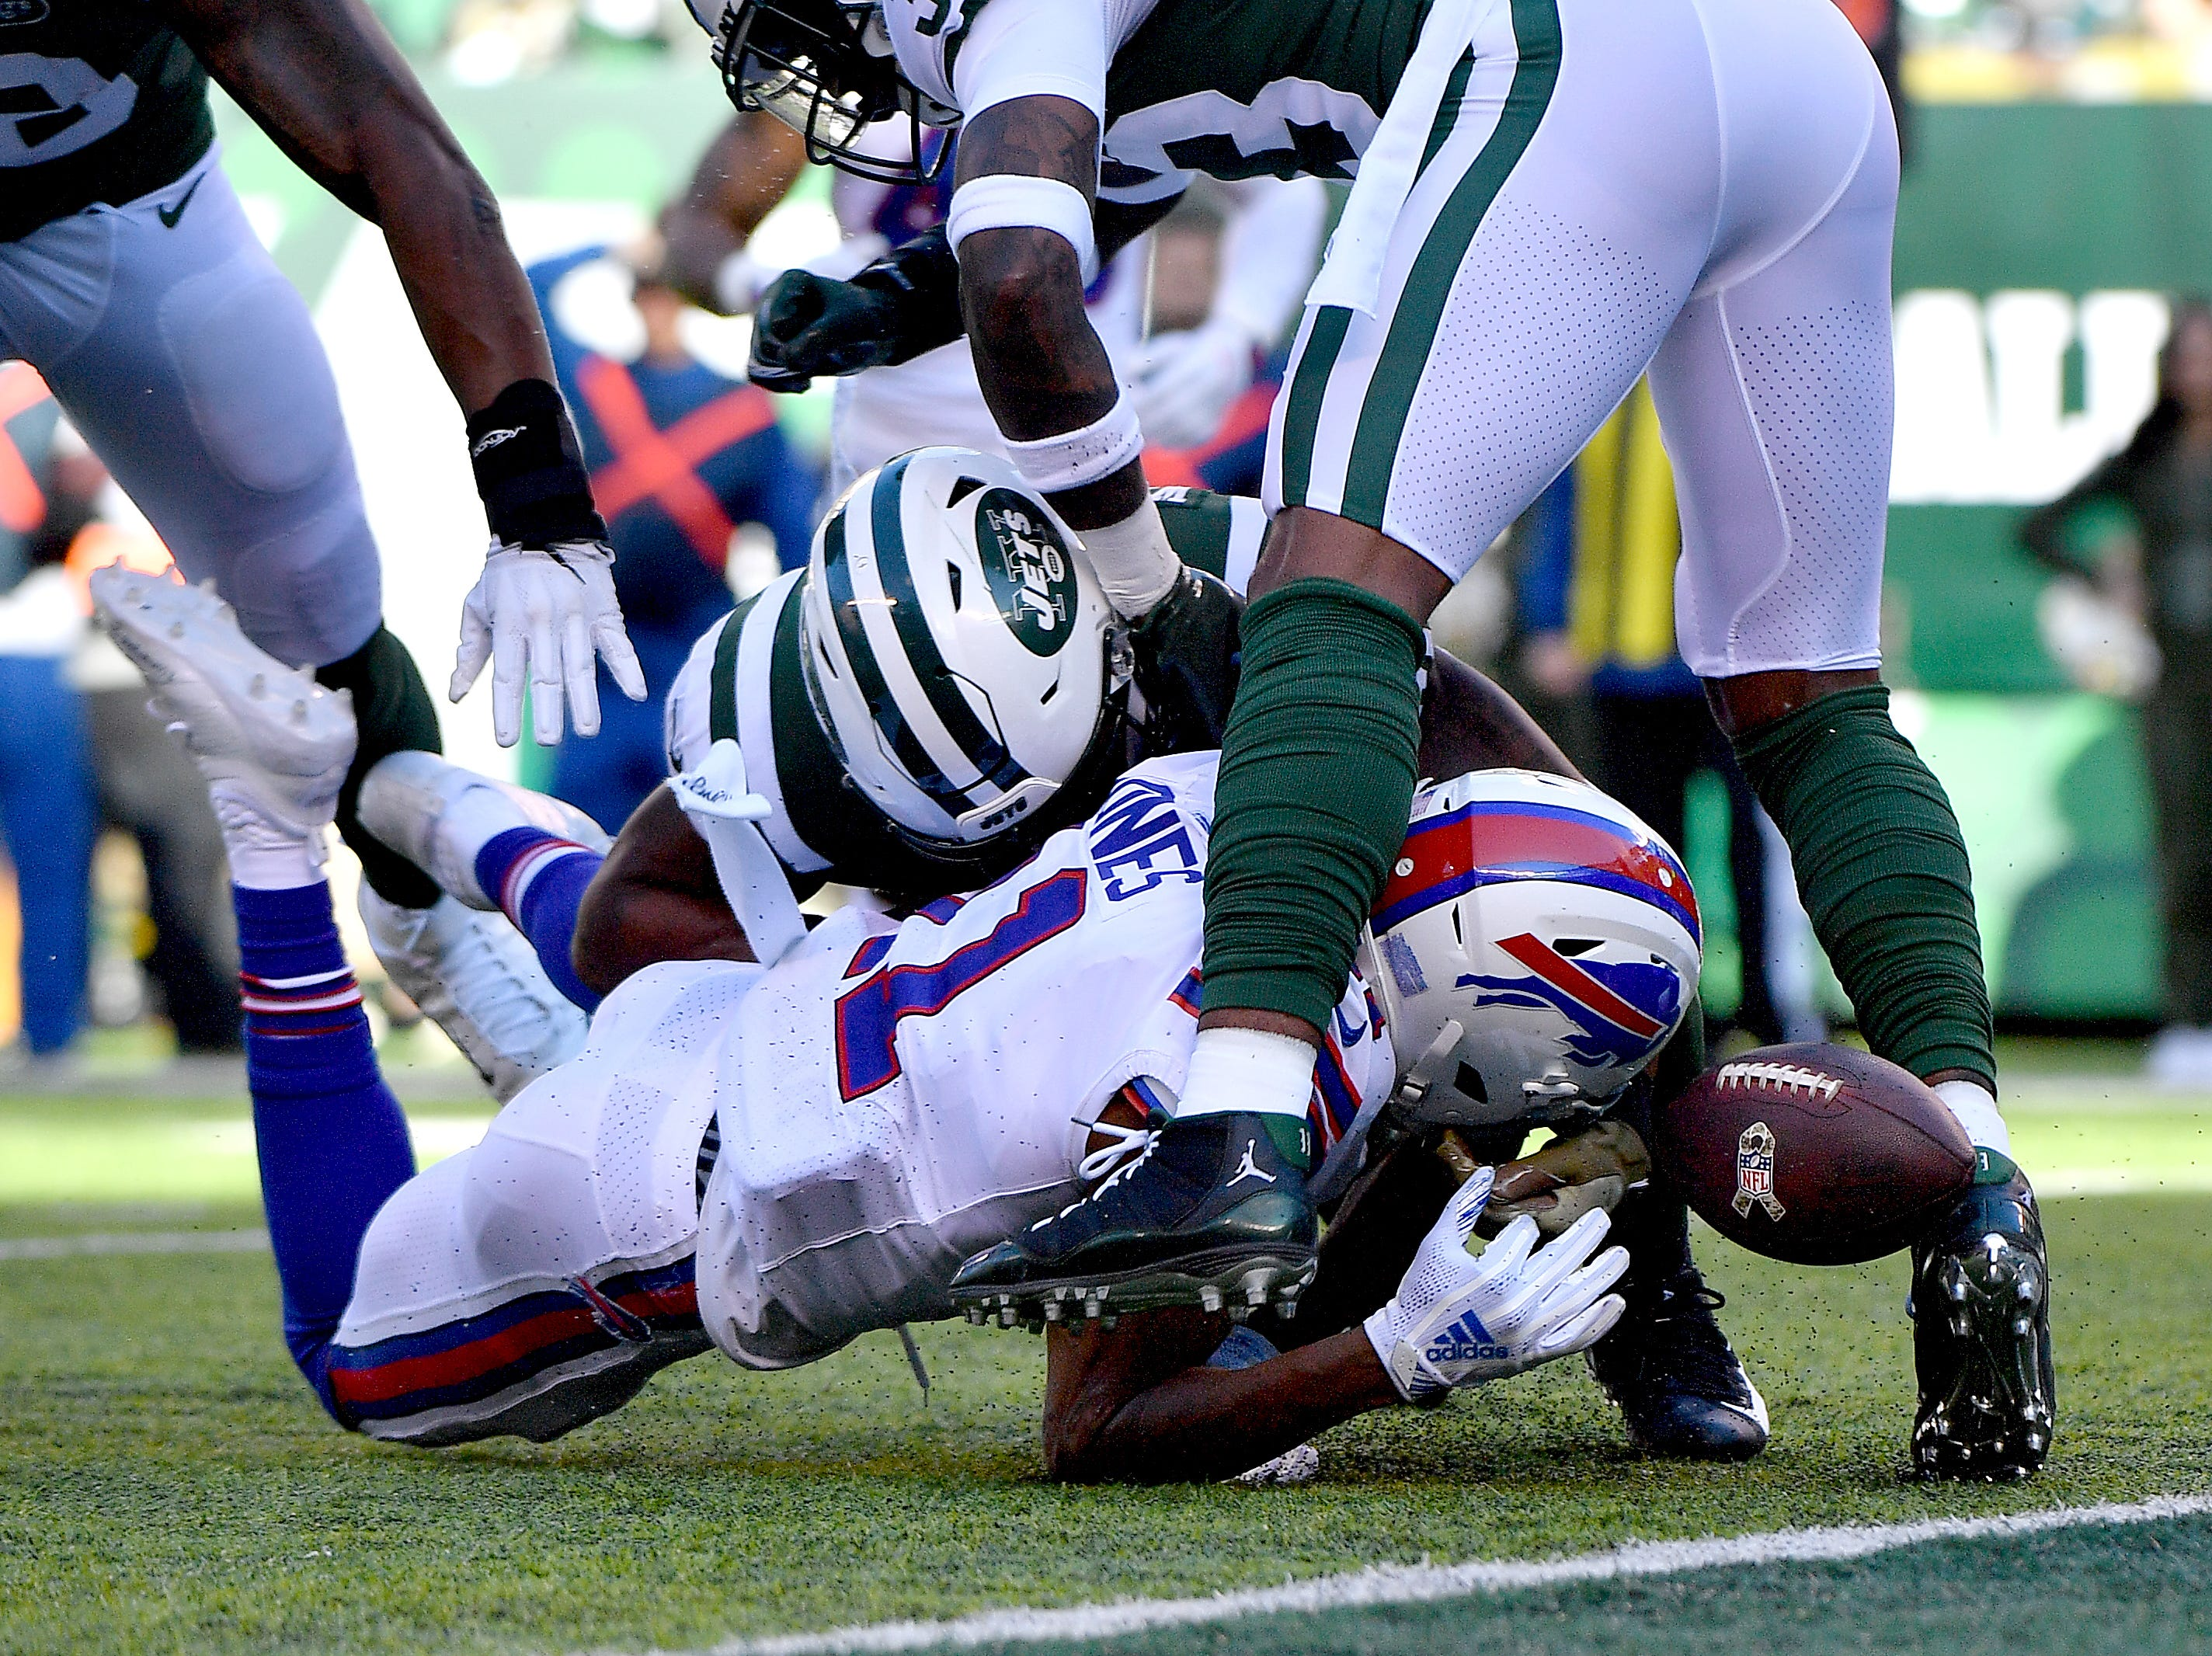 EAST RUTHERFORD, NEW JERSEY - NOVEMBER 11: Zay Jones #11 of the Buffalo Bills fumbles the ball into the end zone that leads to a touchdown by teammate Jason Croom (not pictured) as he is hit by Avery Williamson #54 of the New York Jets during the first quarter at MetLife Stadium on November 11, 2018 in East Rutherford, New Jersey. (Photo by Mark Brown/Getty Images)